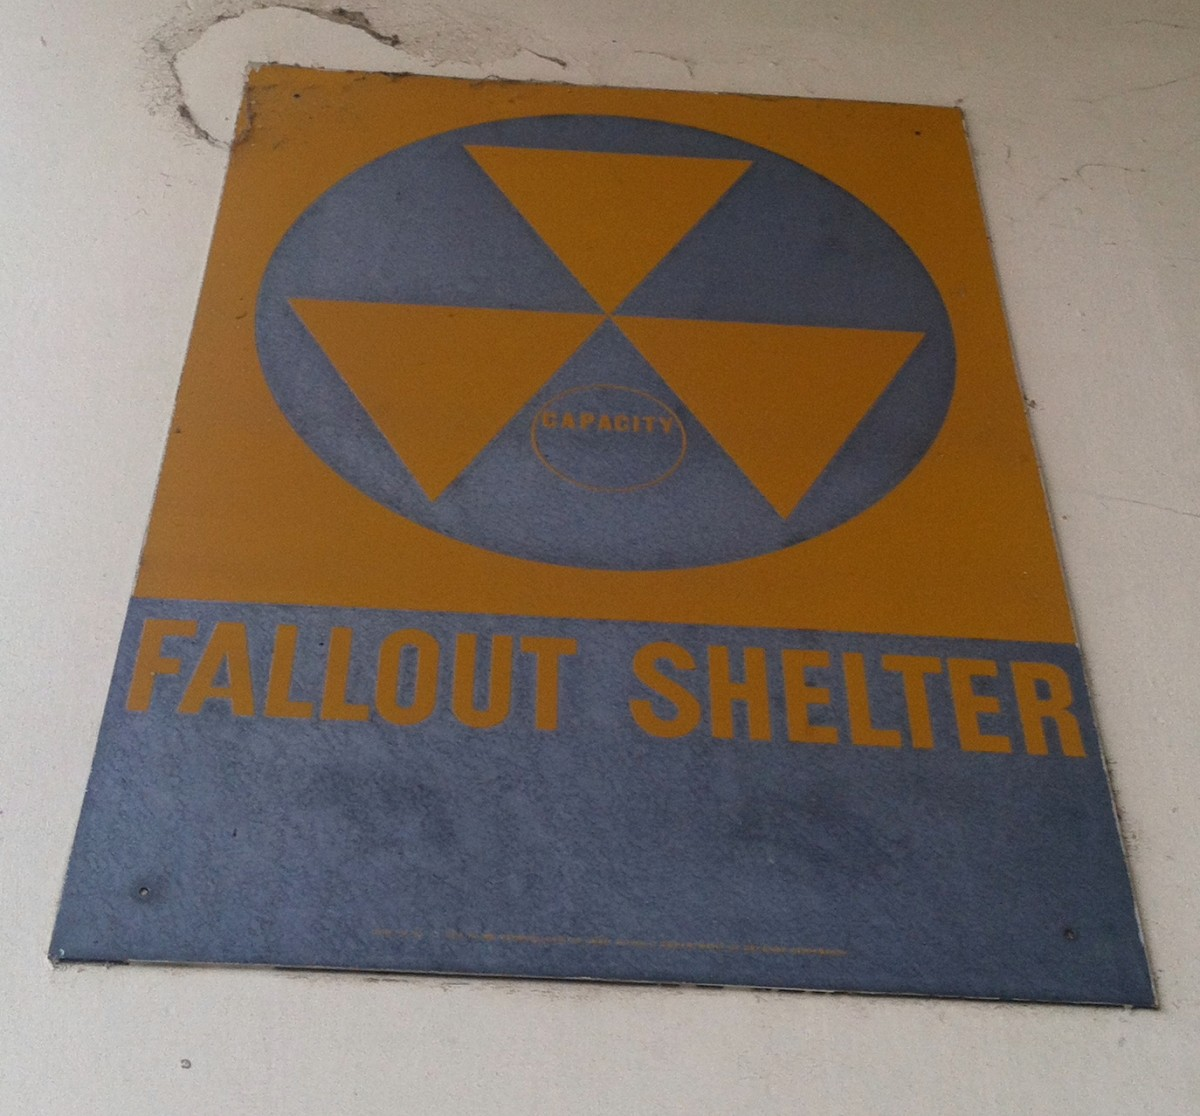 A sign indicating a fallout shelter at a government facility.  Look for these signs anywhere you go so you know where they are.